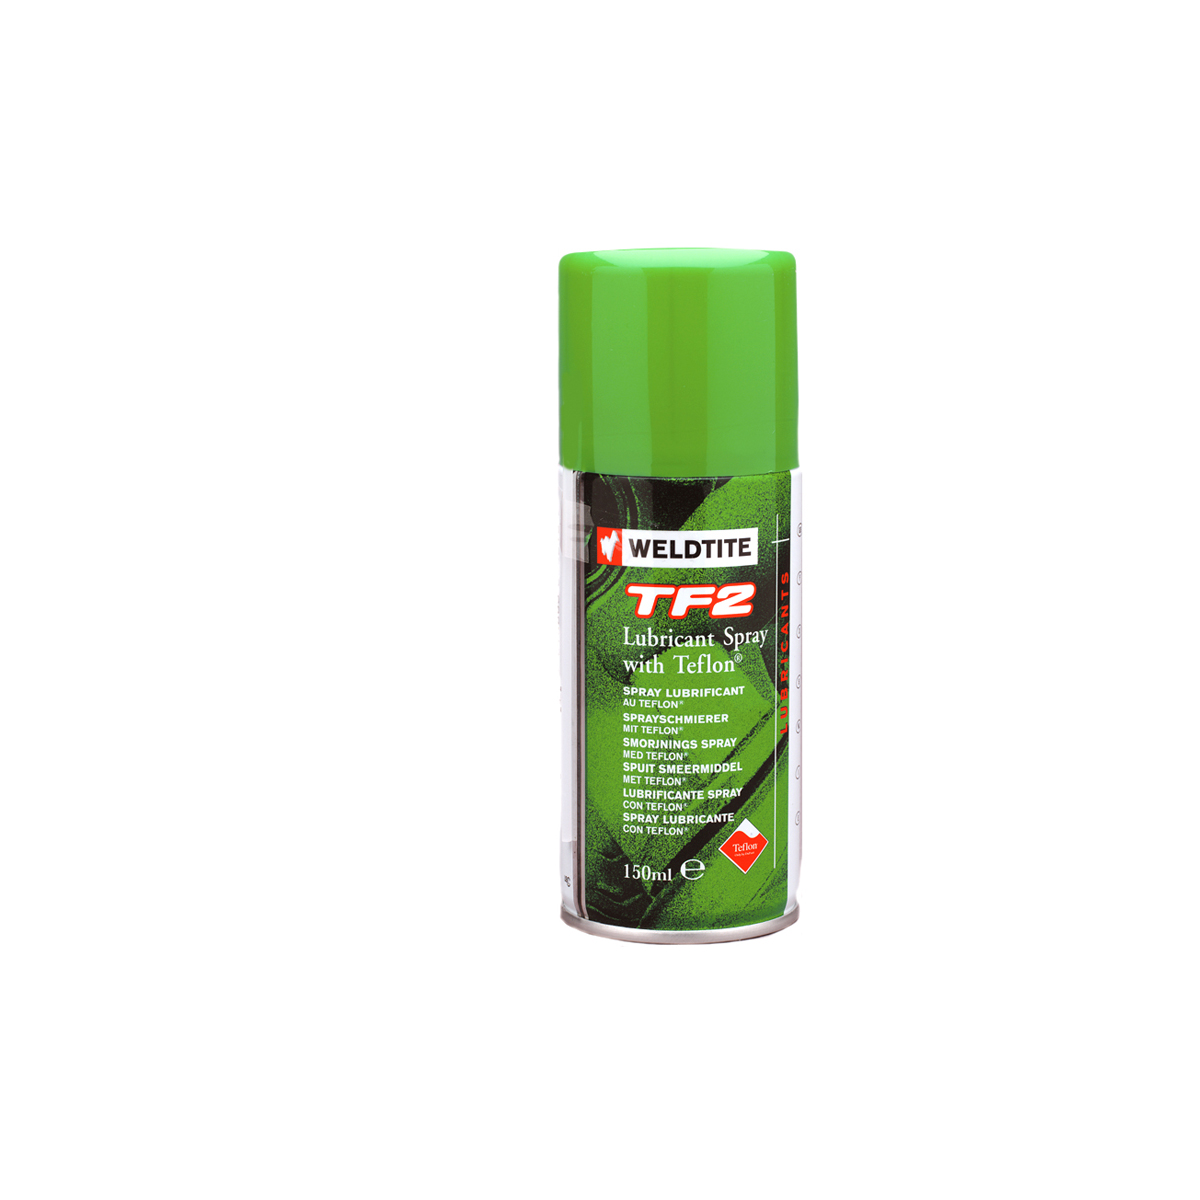 Aérosol TF2 Weldtite 150 ml